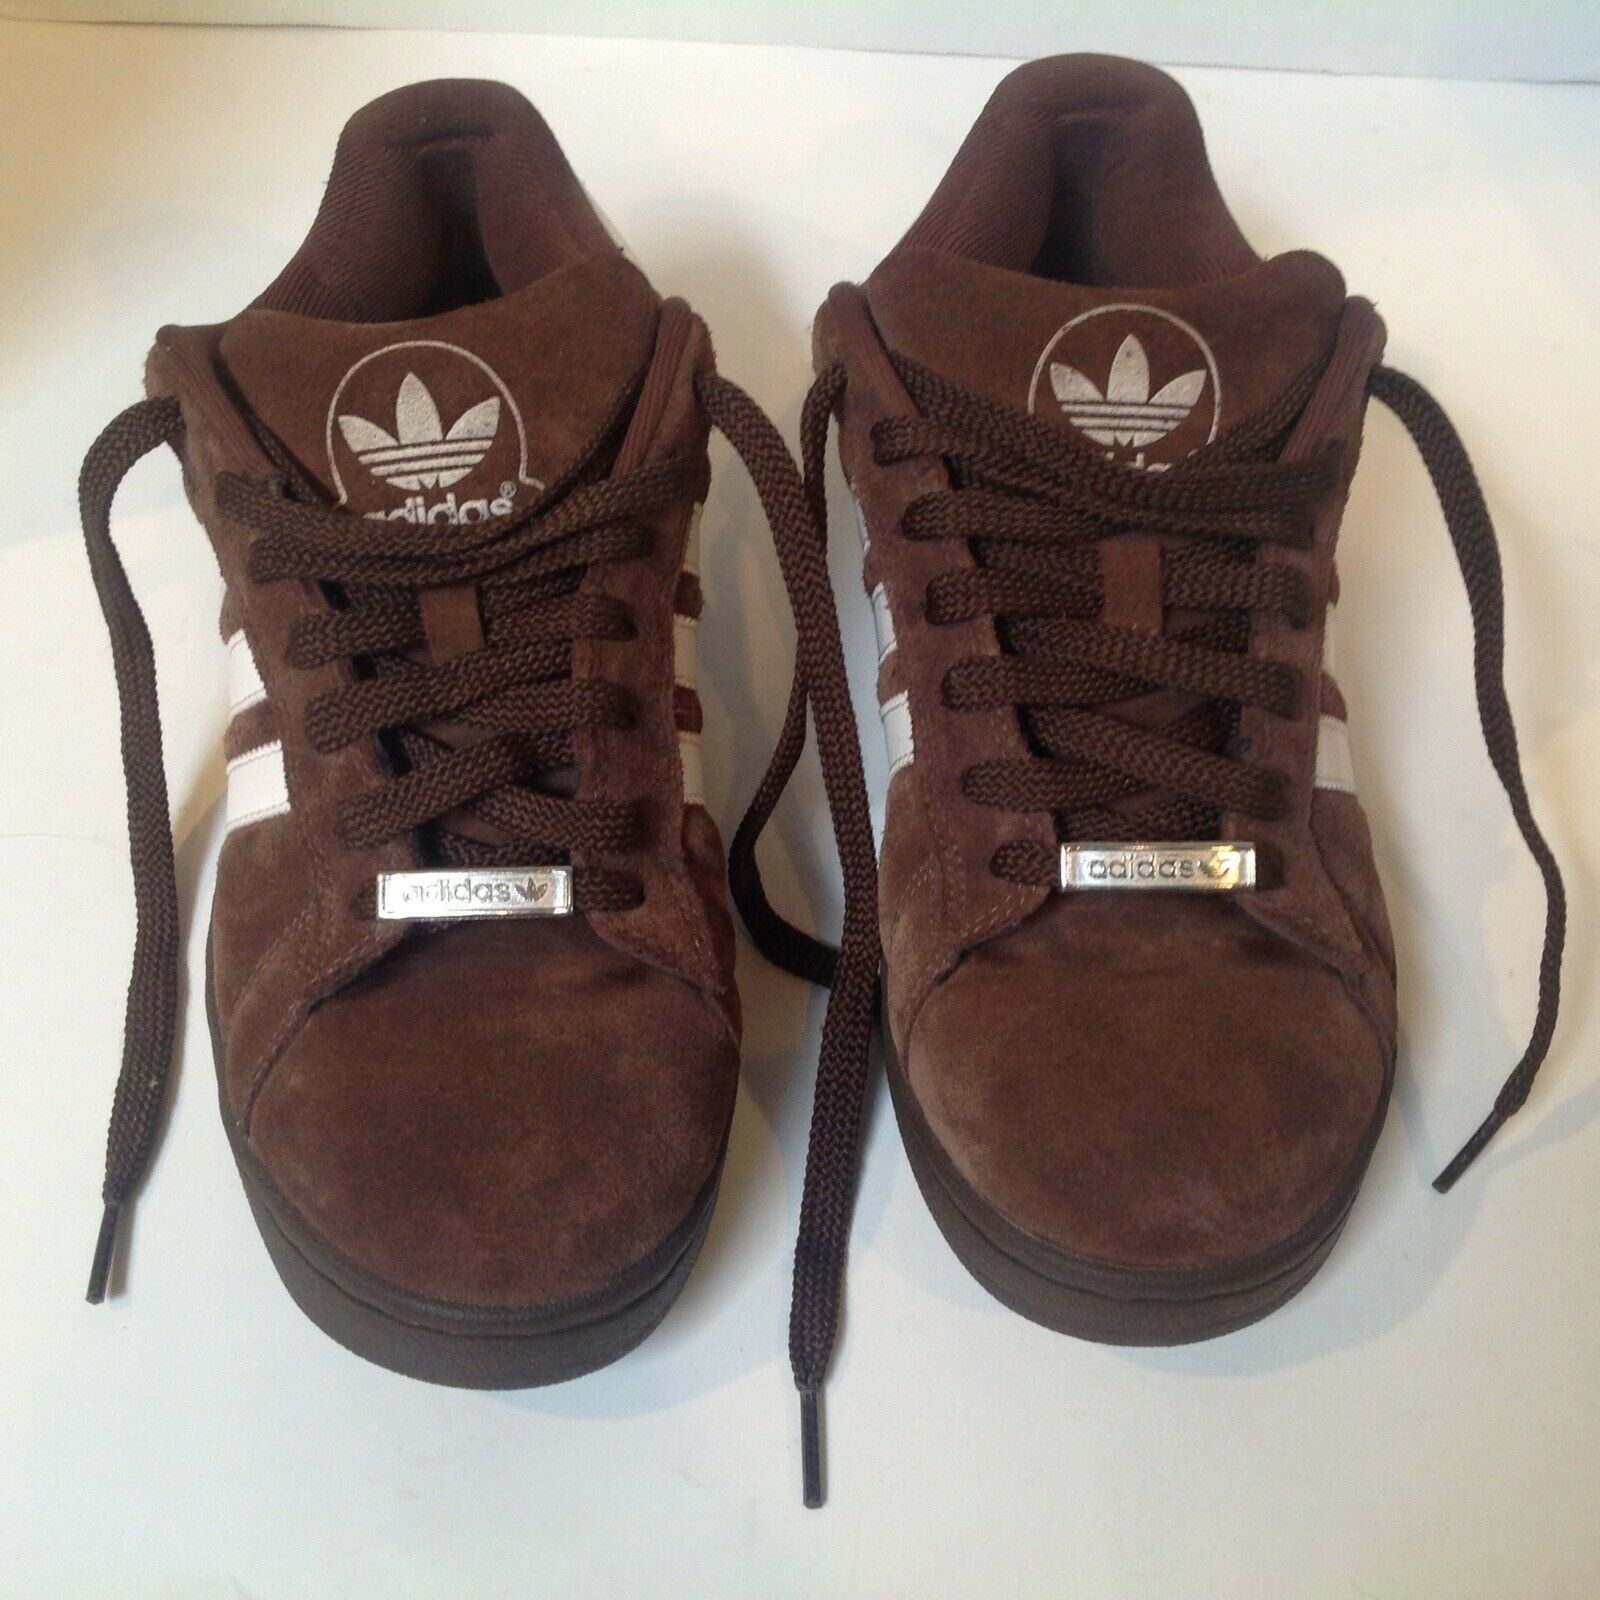 Adidas Campus ST Brown Trefoil 3 Stripes Spell out  Suede shoes Mens 8